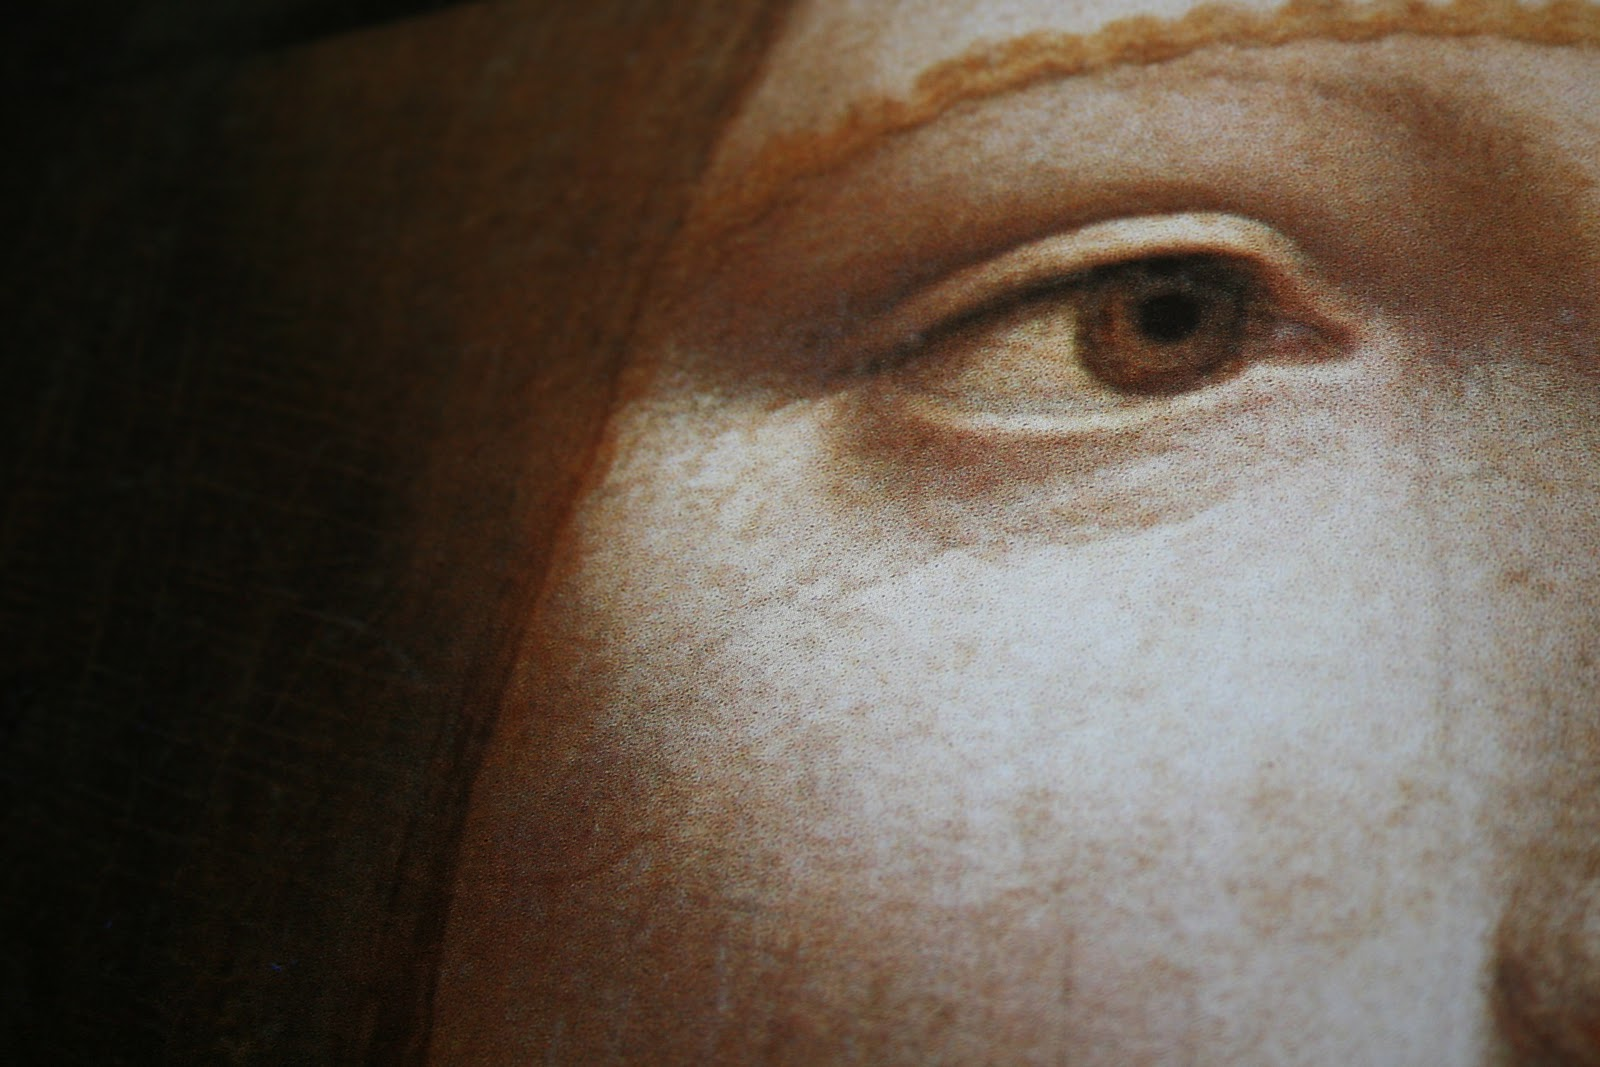 painting at the court of milan Alastair sooke's tour around 'leonardo da vinci: painter at the court of milan' at the national gallery alastair sooke got privileged access to what is being called the art exhibition of the century.